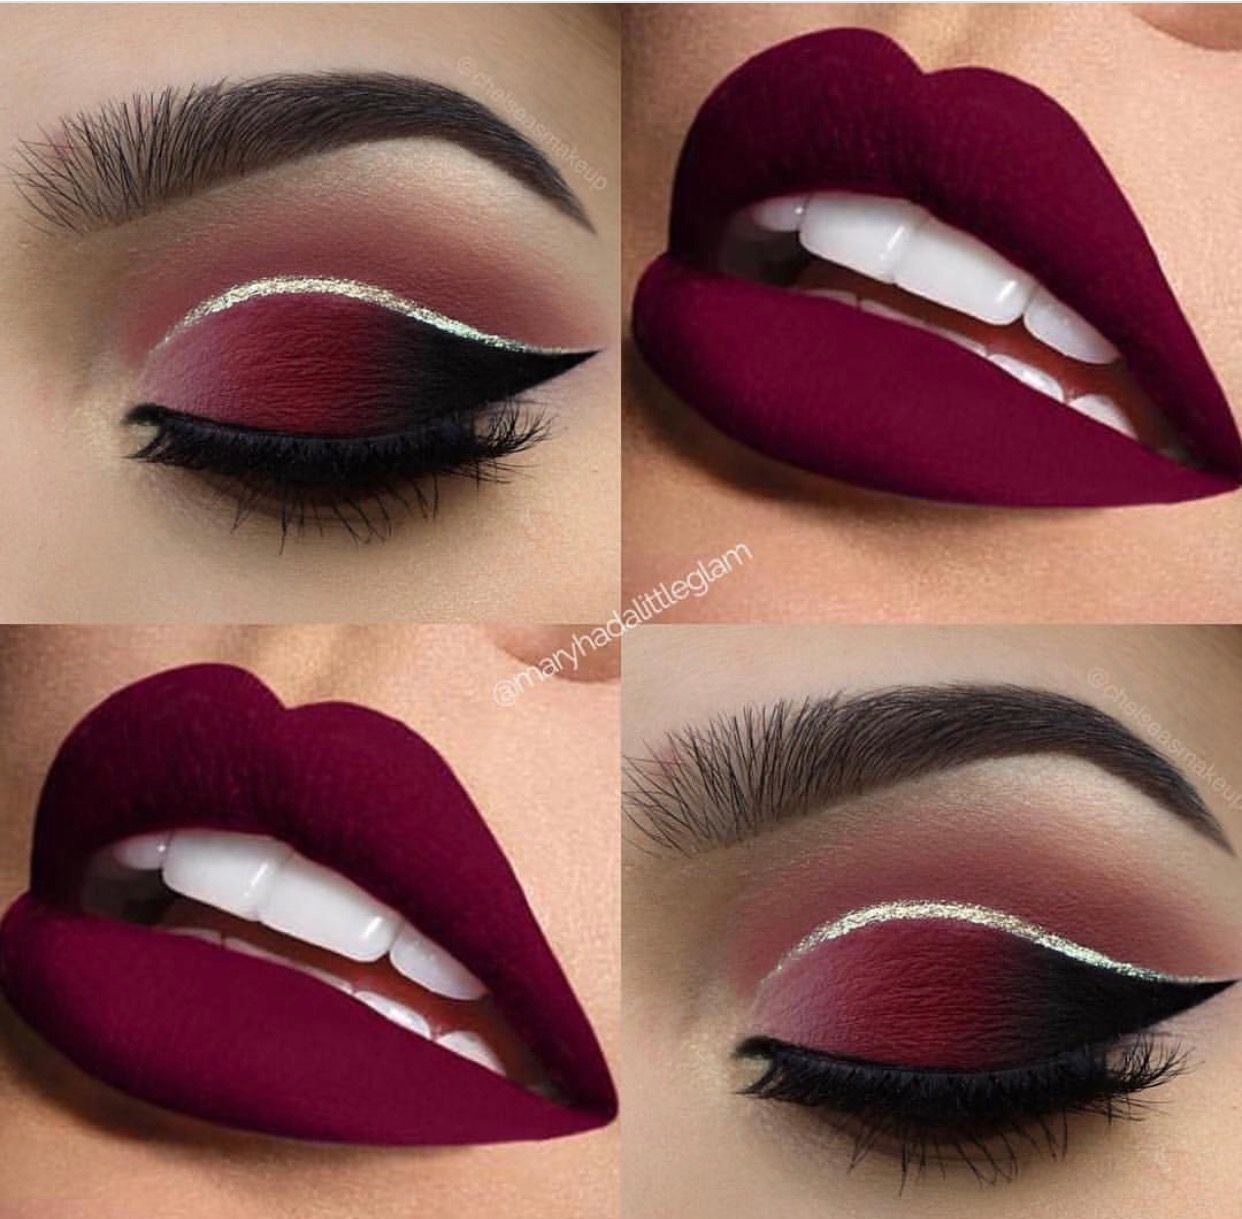 Maroon Makeup I Think The Eye Makeup With A Nude Lip